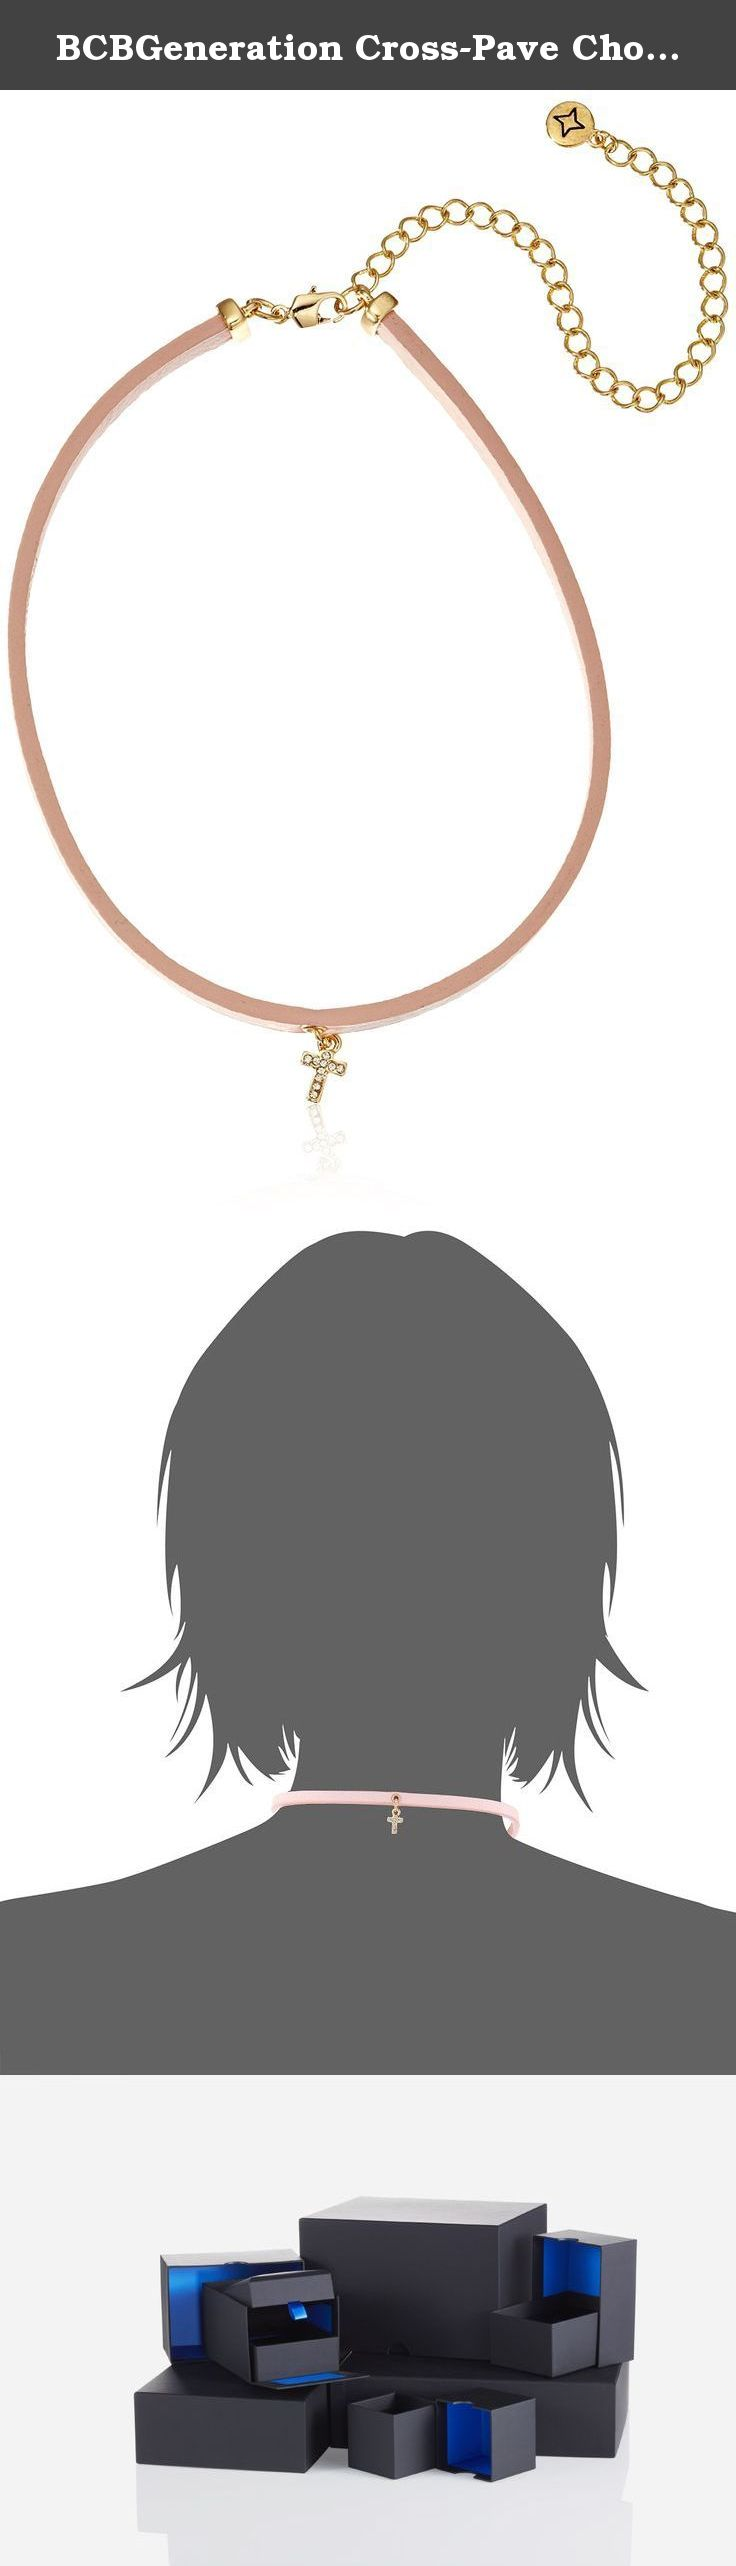 """BCBGeneration Cross-Pave Choker Necklace, 12.5"""" + 5"""". Faux-leather choker necklace with pave cross charm. Lobster-claw clasp. Made in China."""